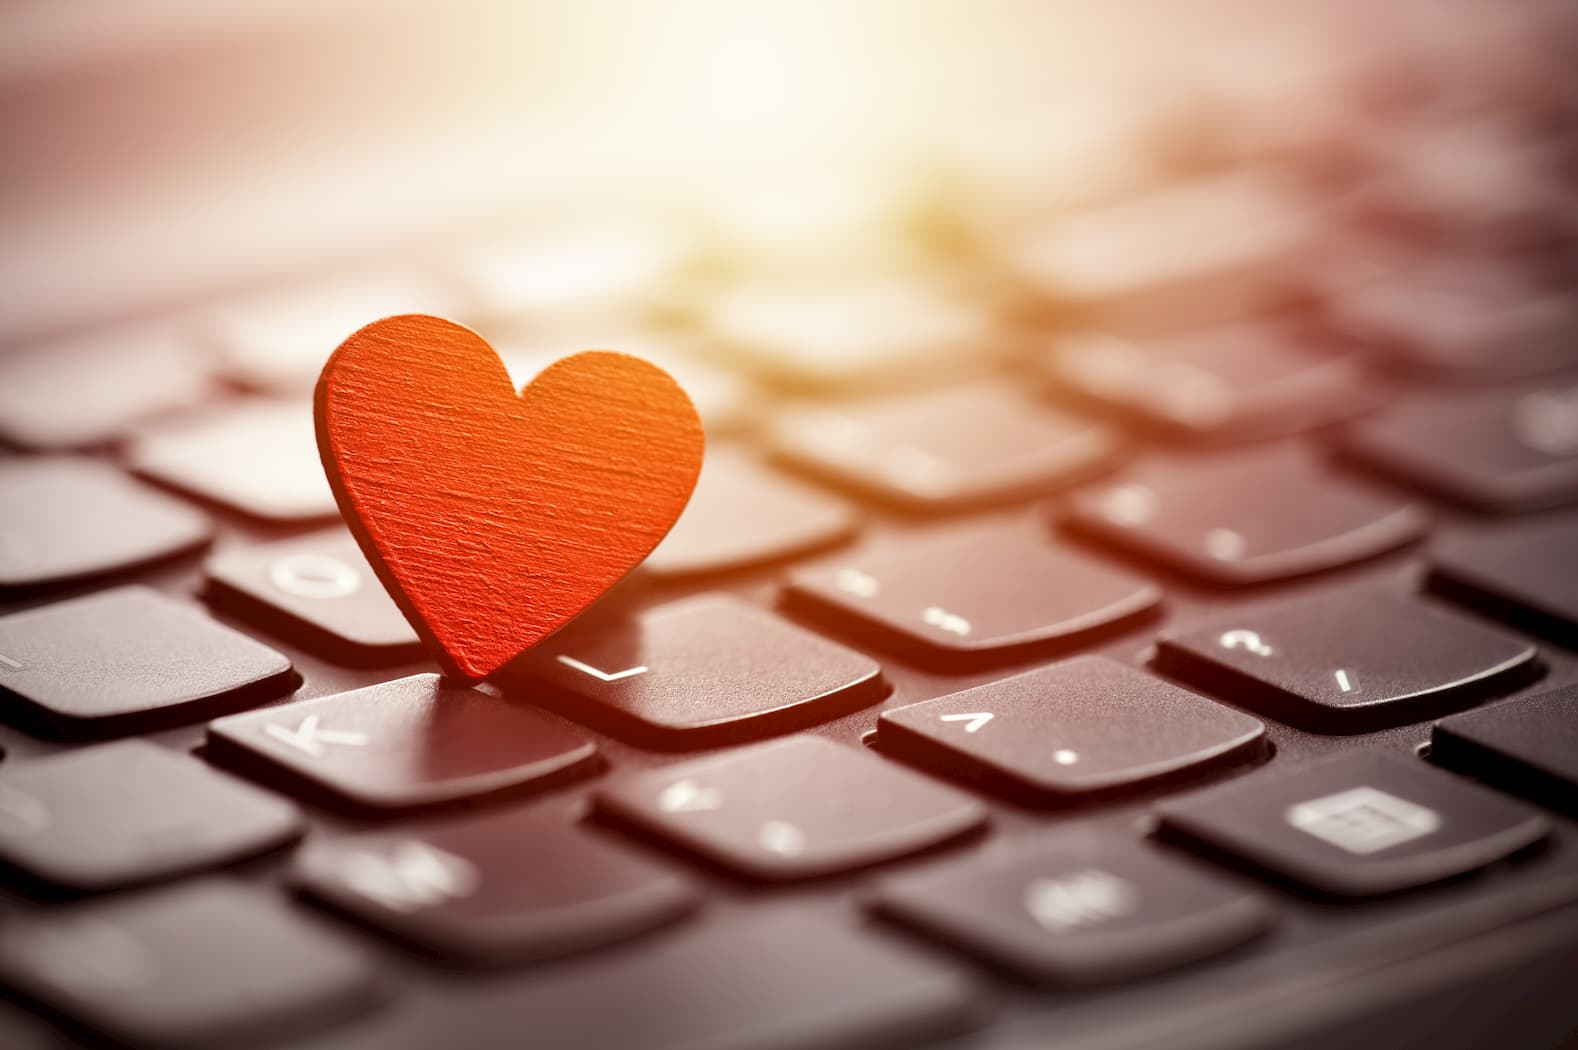 The Common Rules Of Online Dating